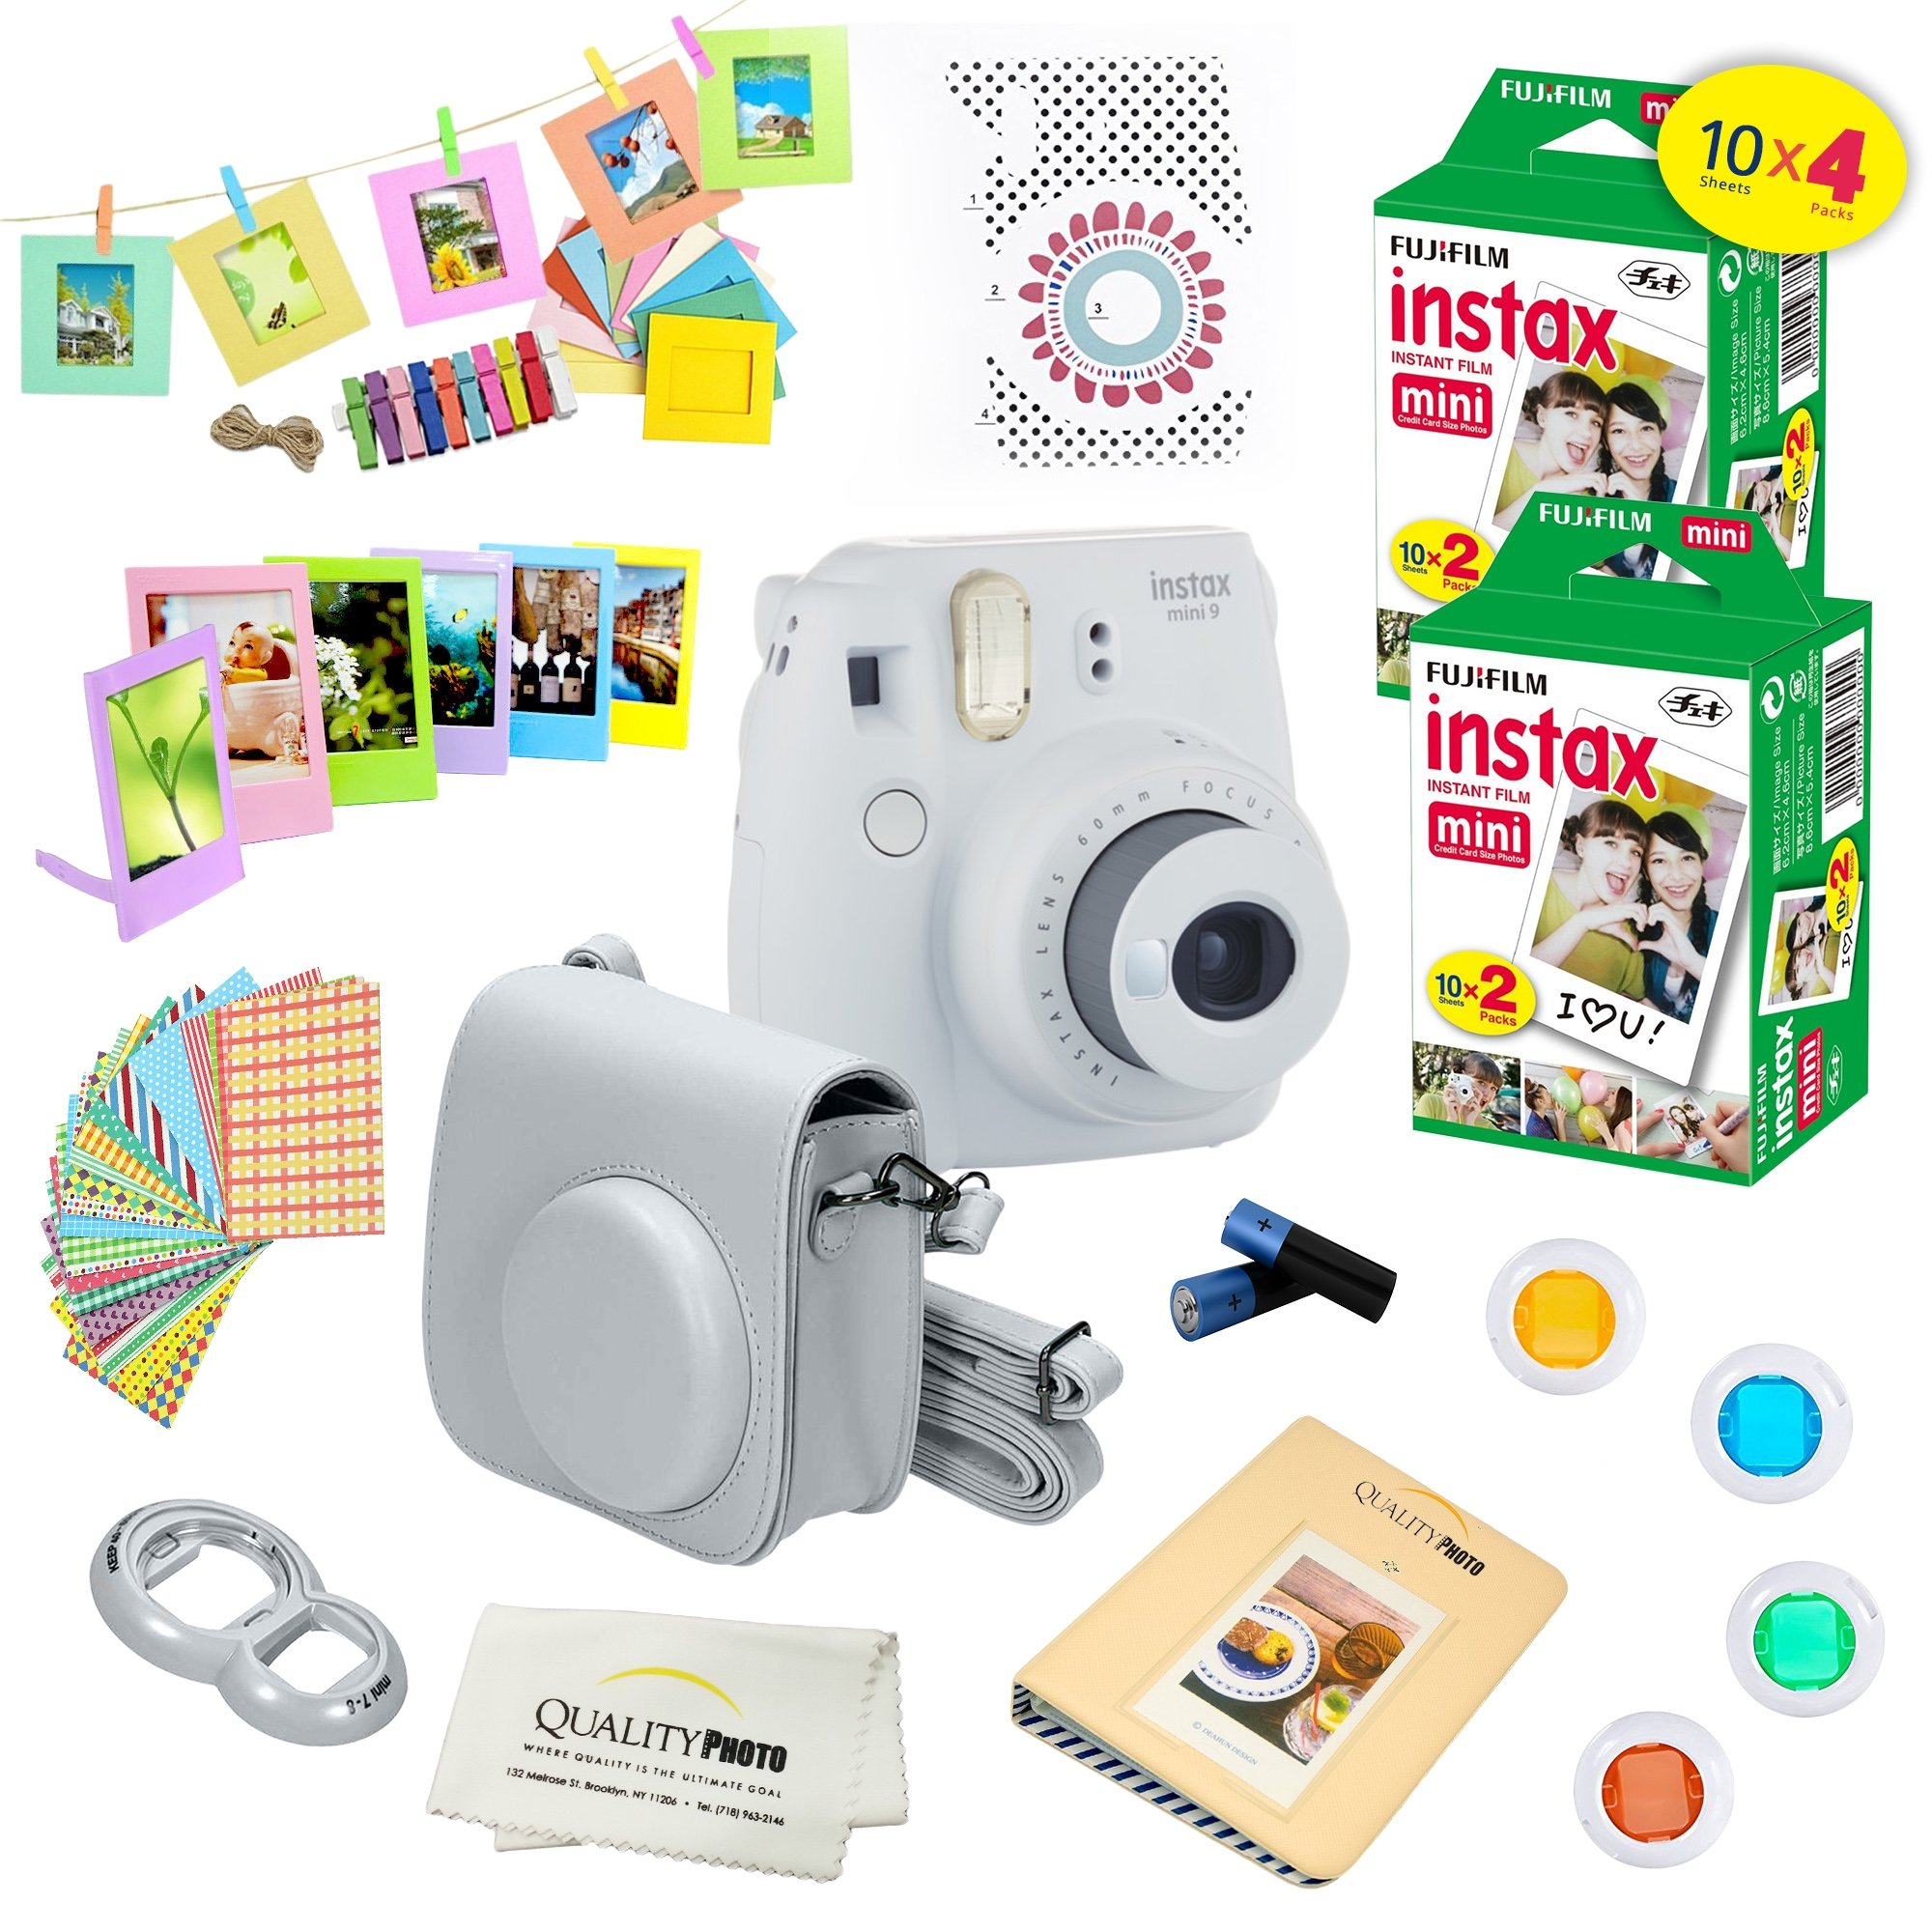 Fujifilm Instax Mini 9 Camera + Fuji INSTAX Instant Film (40 SHEETS) + 14 PC Instax Accessories kit Bundle, Includes; Instax Case + Album + Frames & Stickers + Lens Filters + MORE (Smokey White)